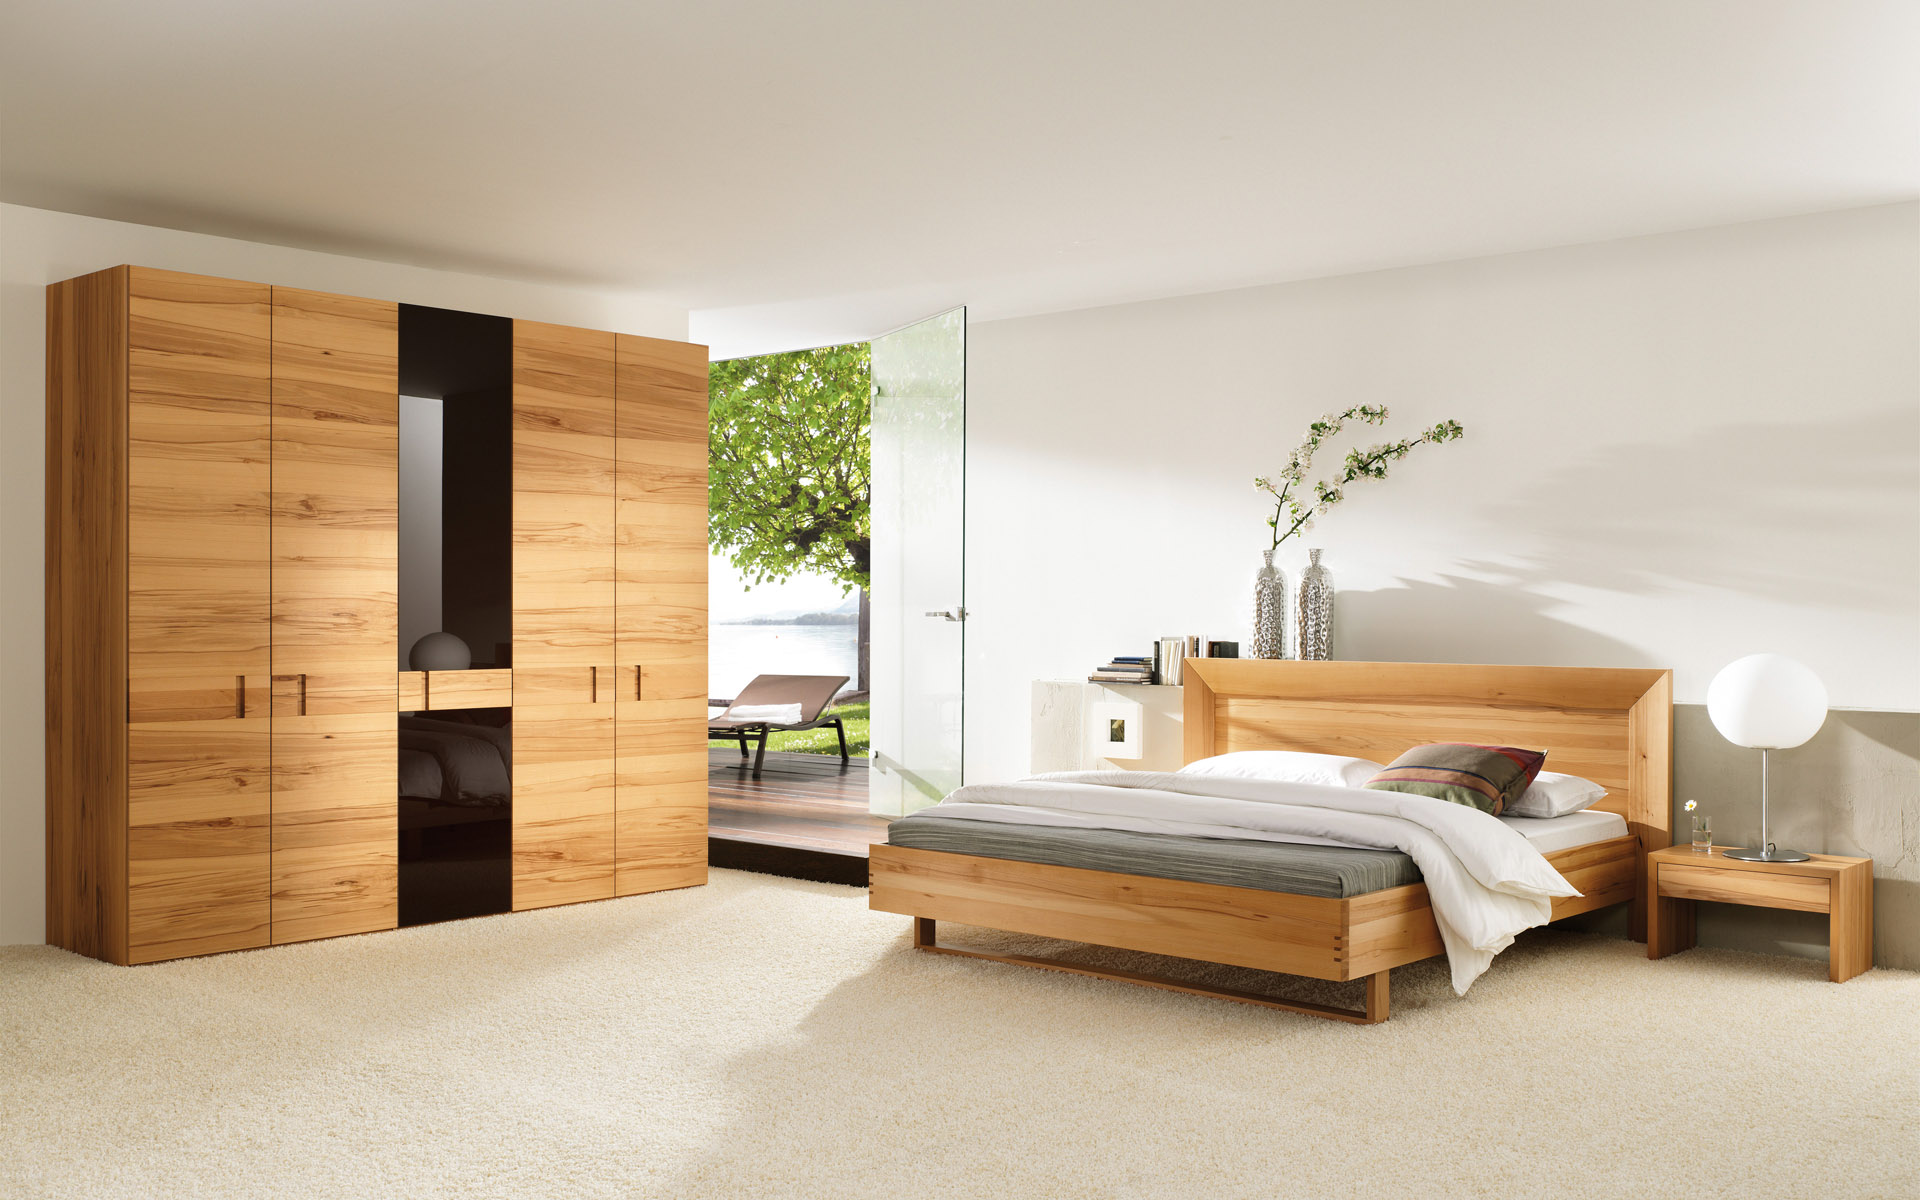 Outstanding Bedroom Designs 1920 x 1200 · 390 kB · jpeg